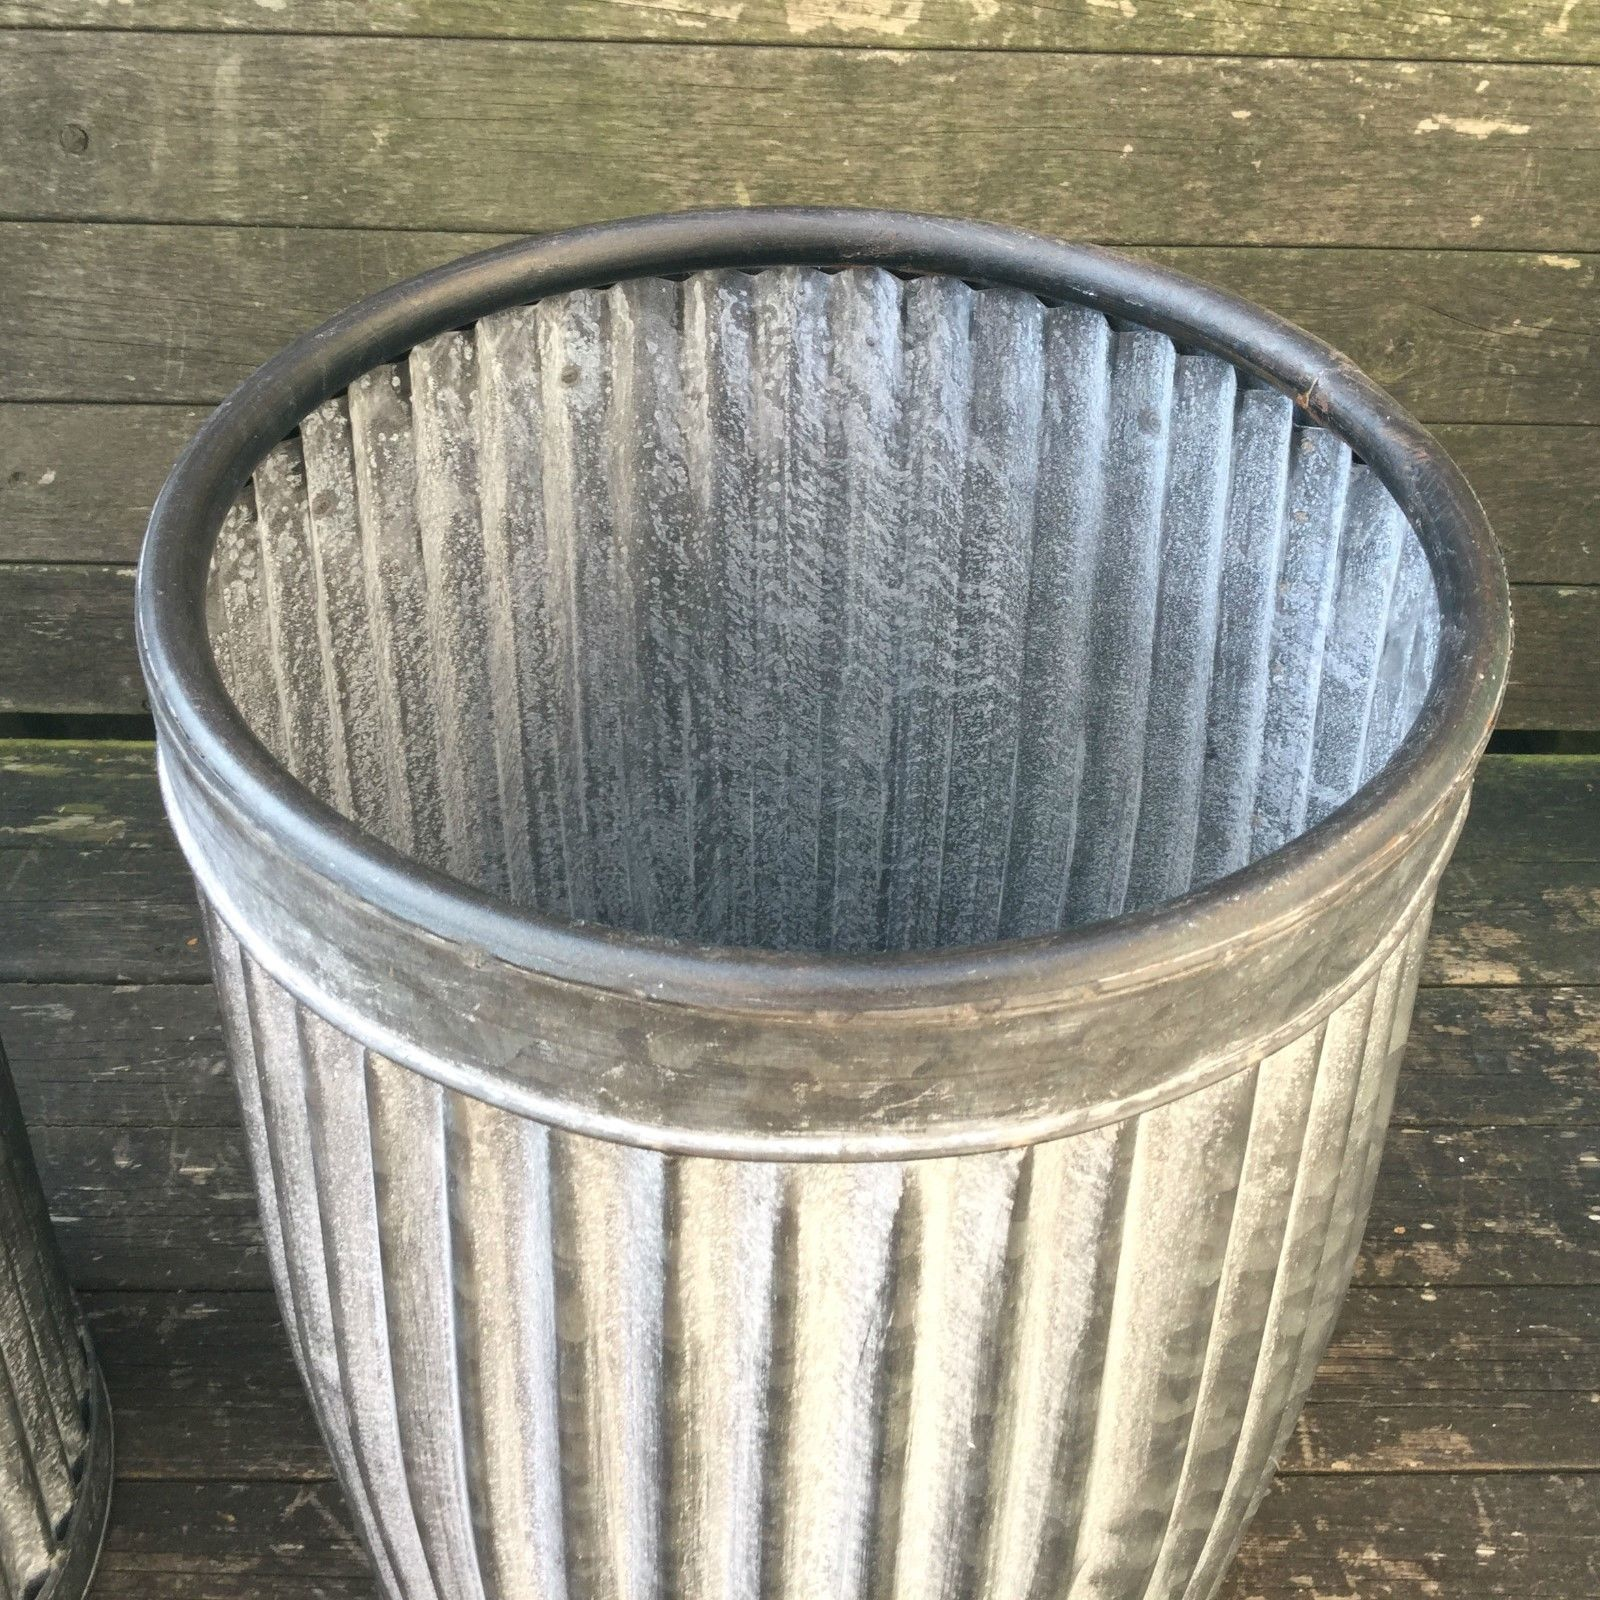 Vintage style grey zinc galvanised metal garden planter for Large metal tub for gardening